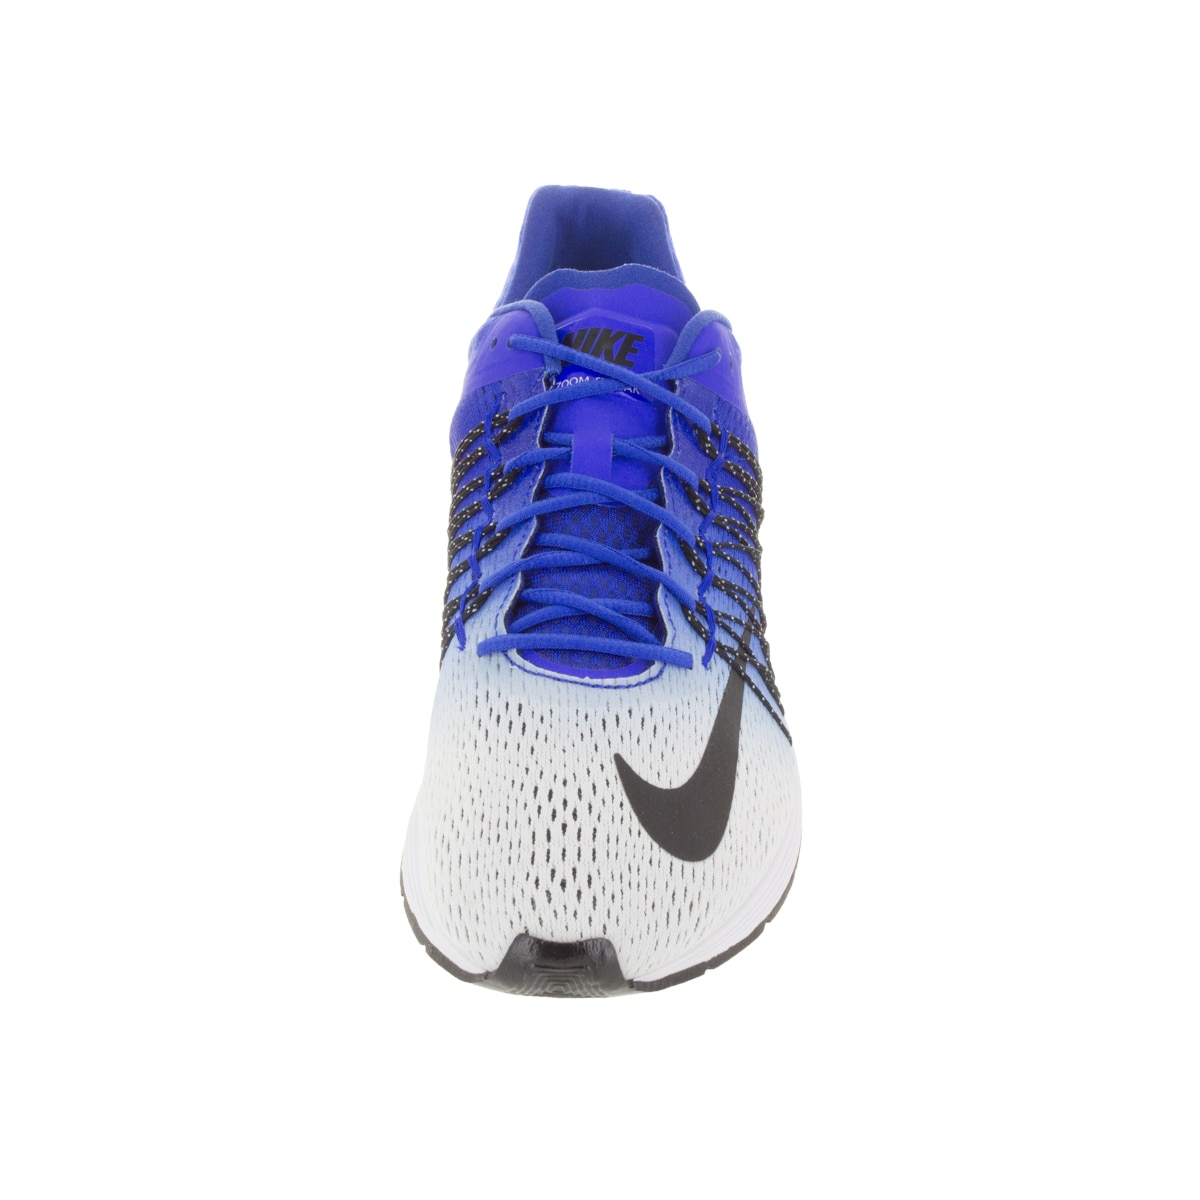 5c1b9e680441e Shop Nike Men s Air Zoom Streak 5 White Black Racer Blue Running Shoe -  Free Shipping Today - Overstock - 12115237